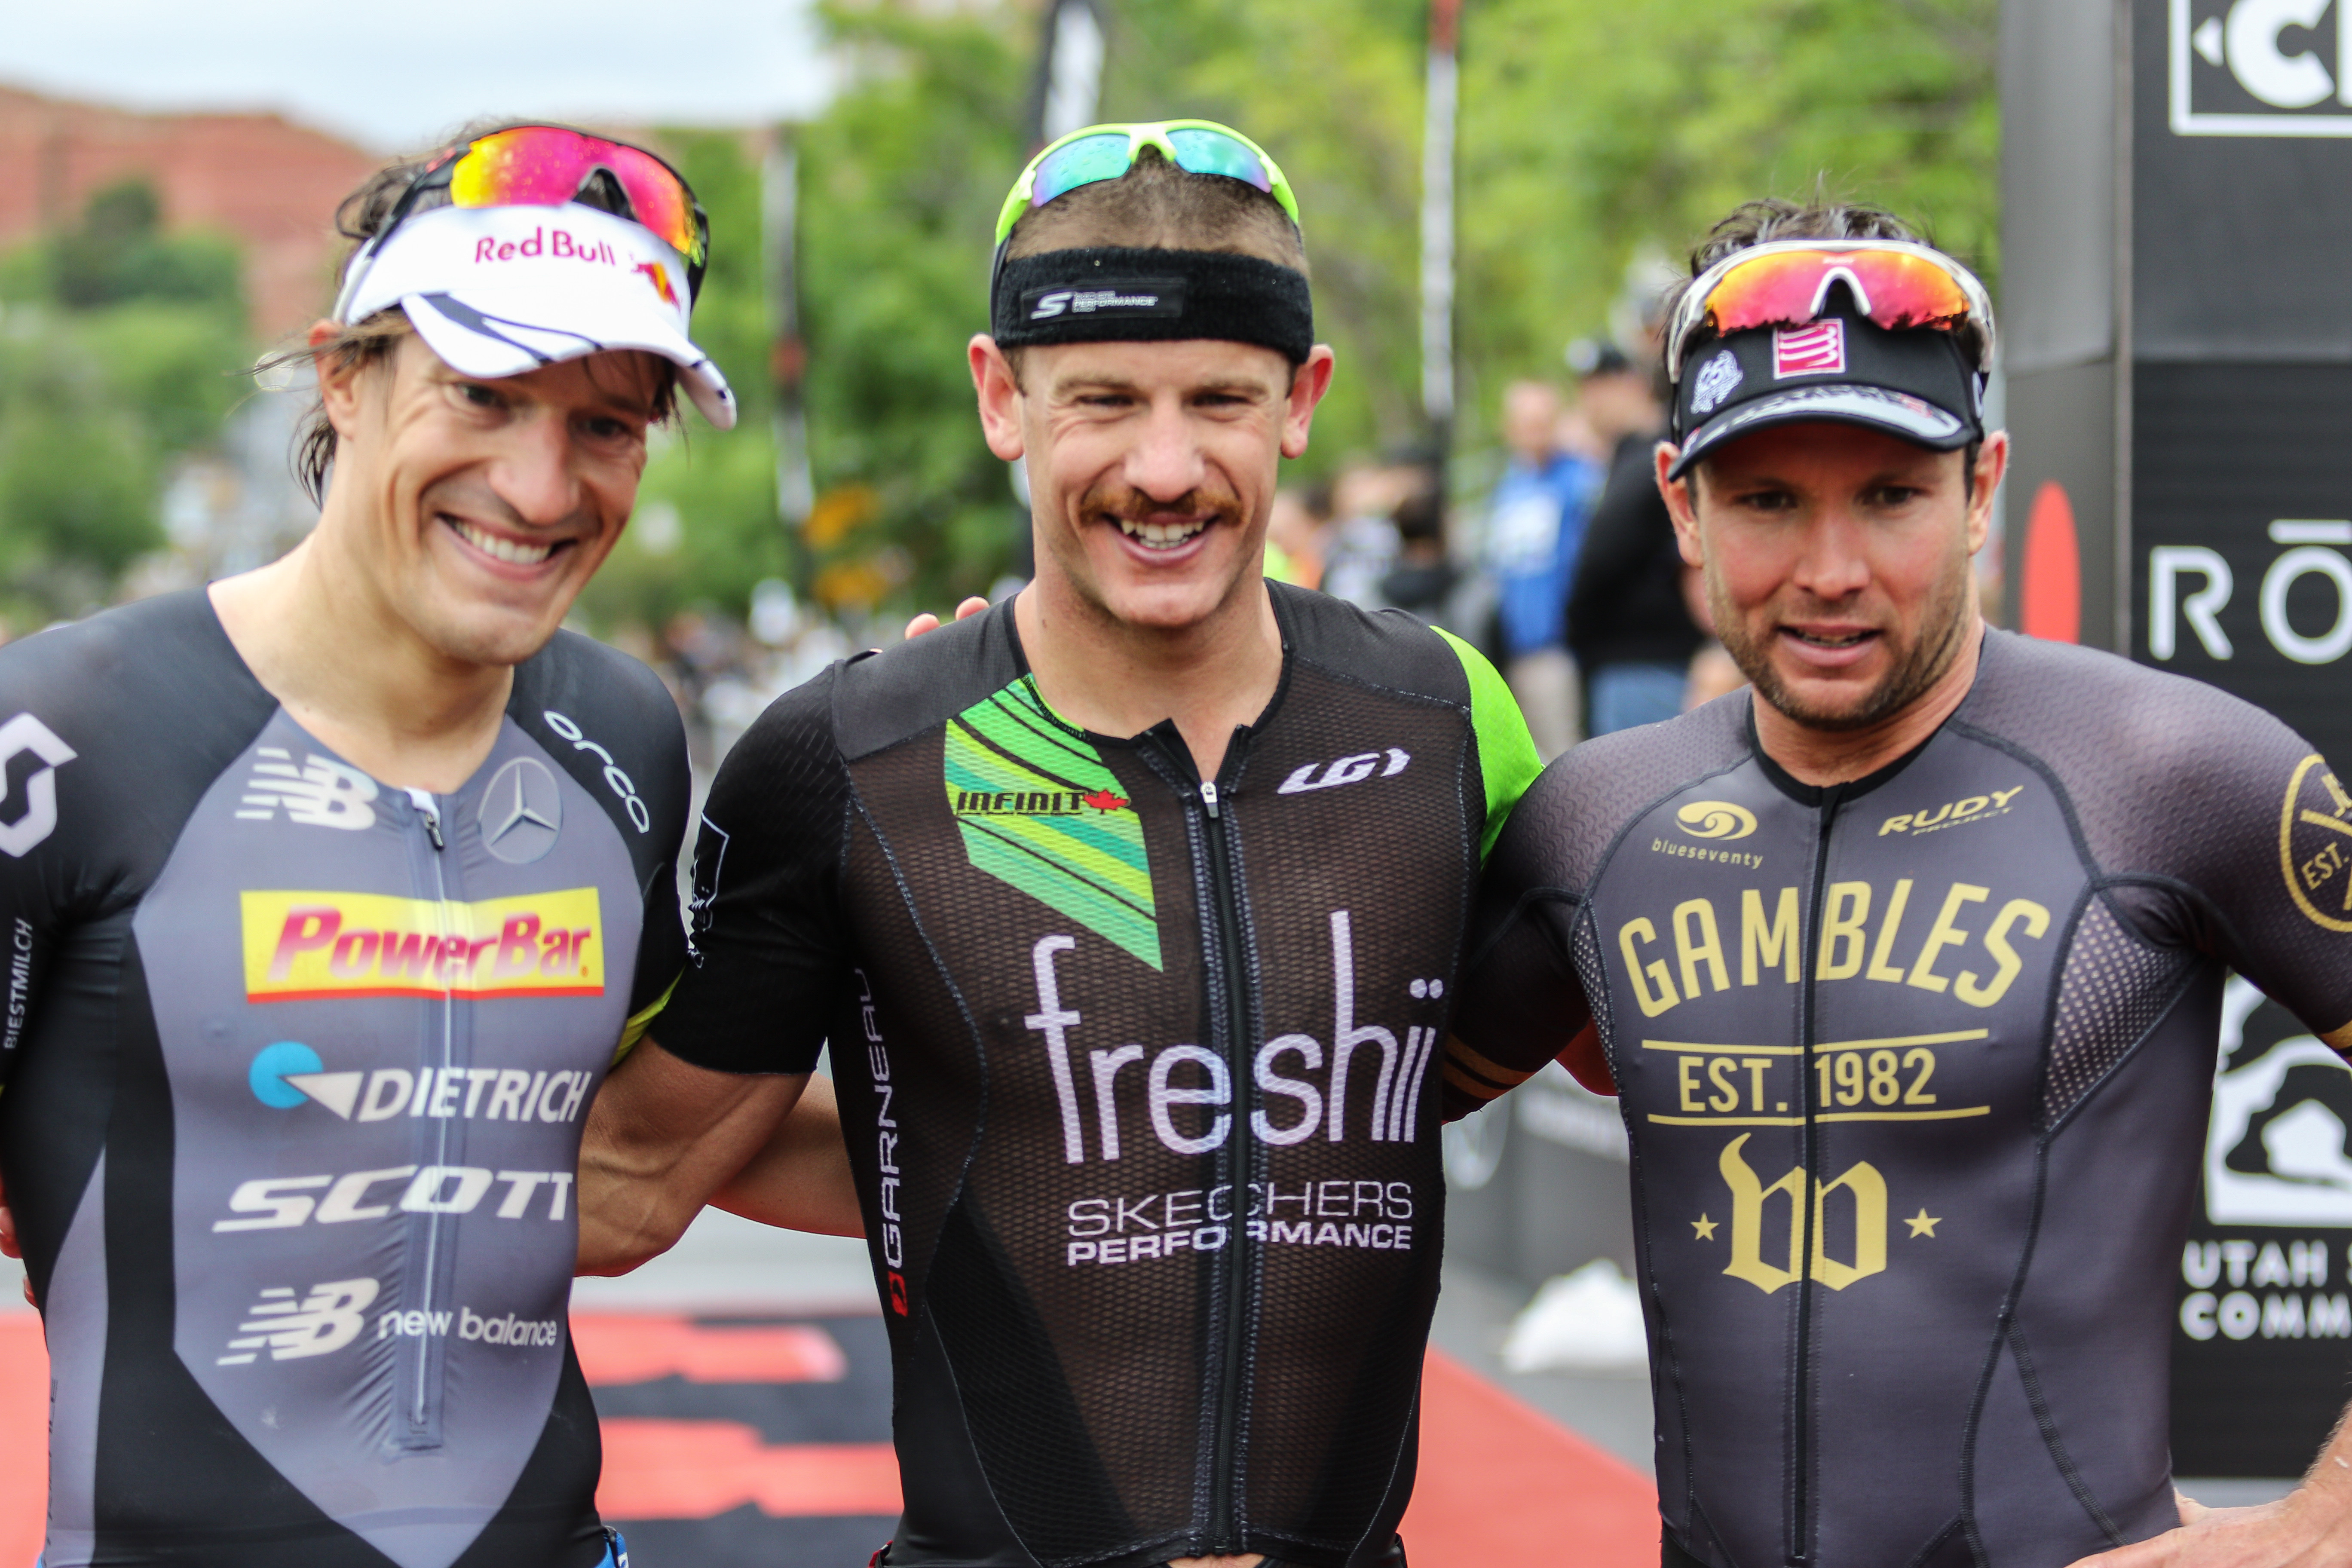 Sebastian Kienle (left) Lionel Sanders (center) and Joe Gambles, Ironman 70.3, St. George, Utah, May 7, 2016, | Photo by Kevin Luthy, St. George News